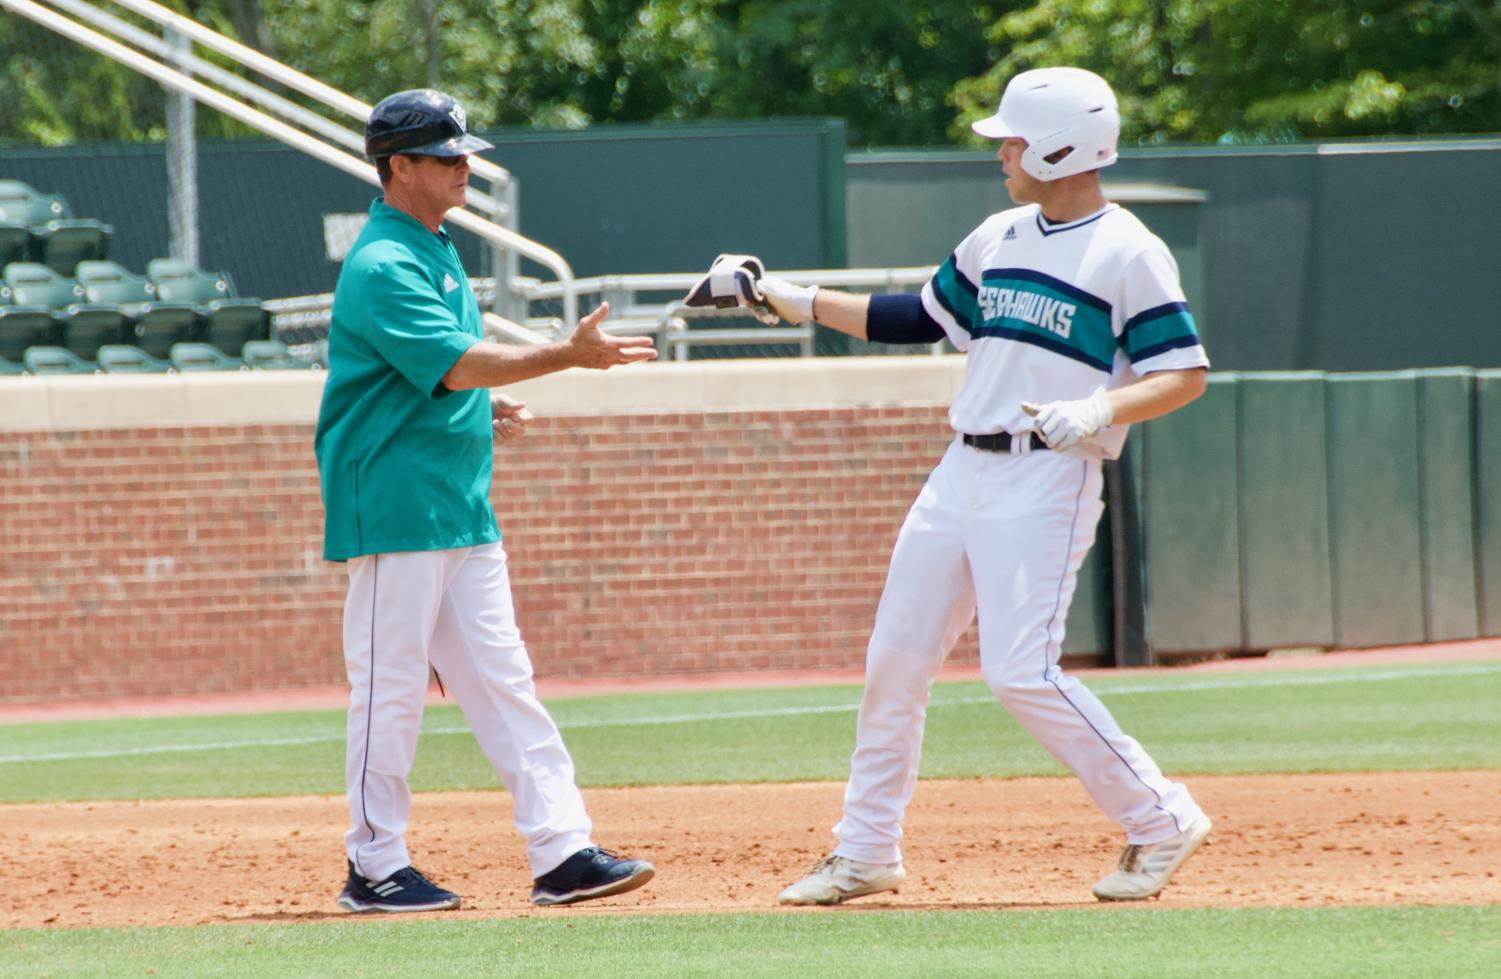 Gallery: UNCW battles Tennessee in win-or-go-home game – The